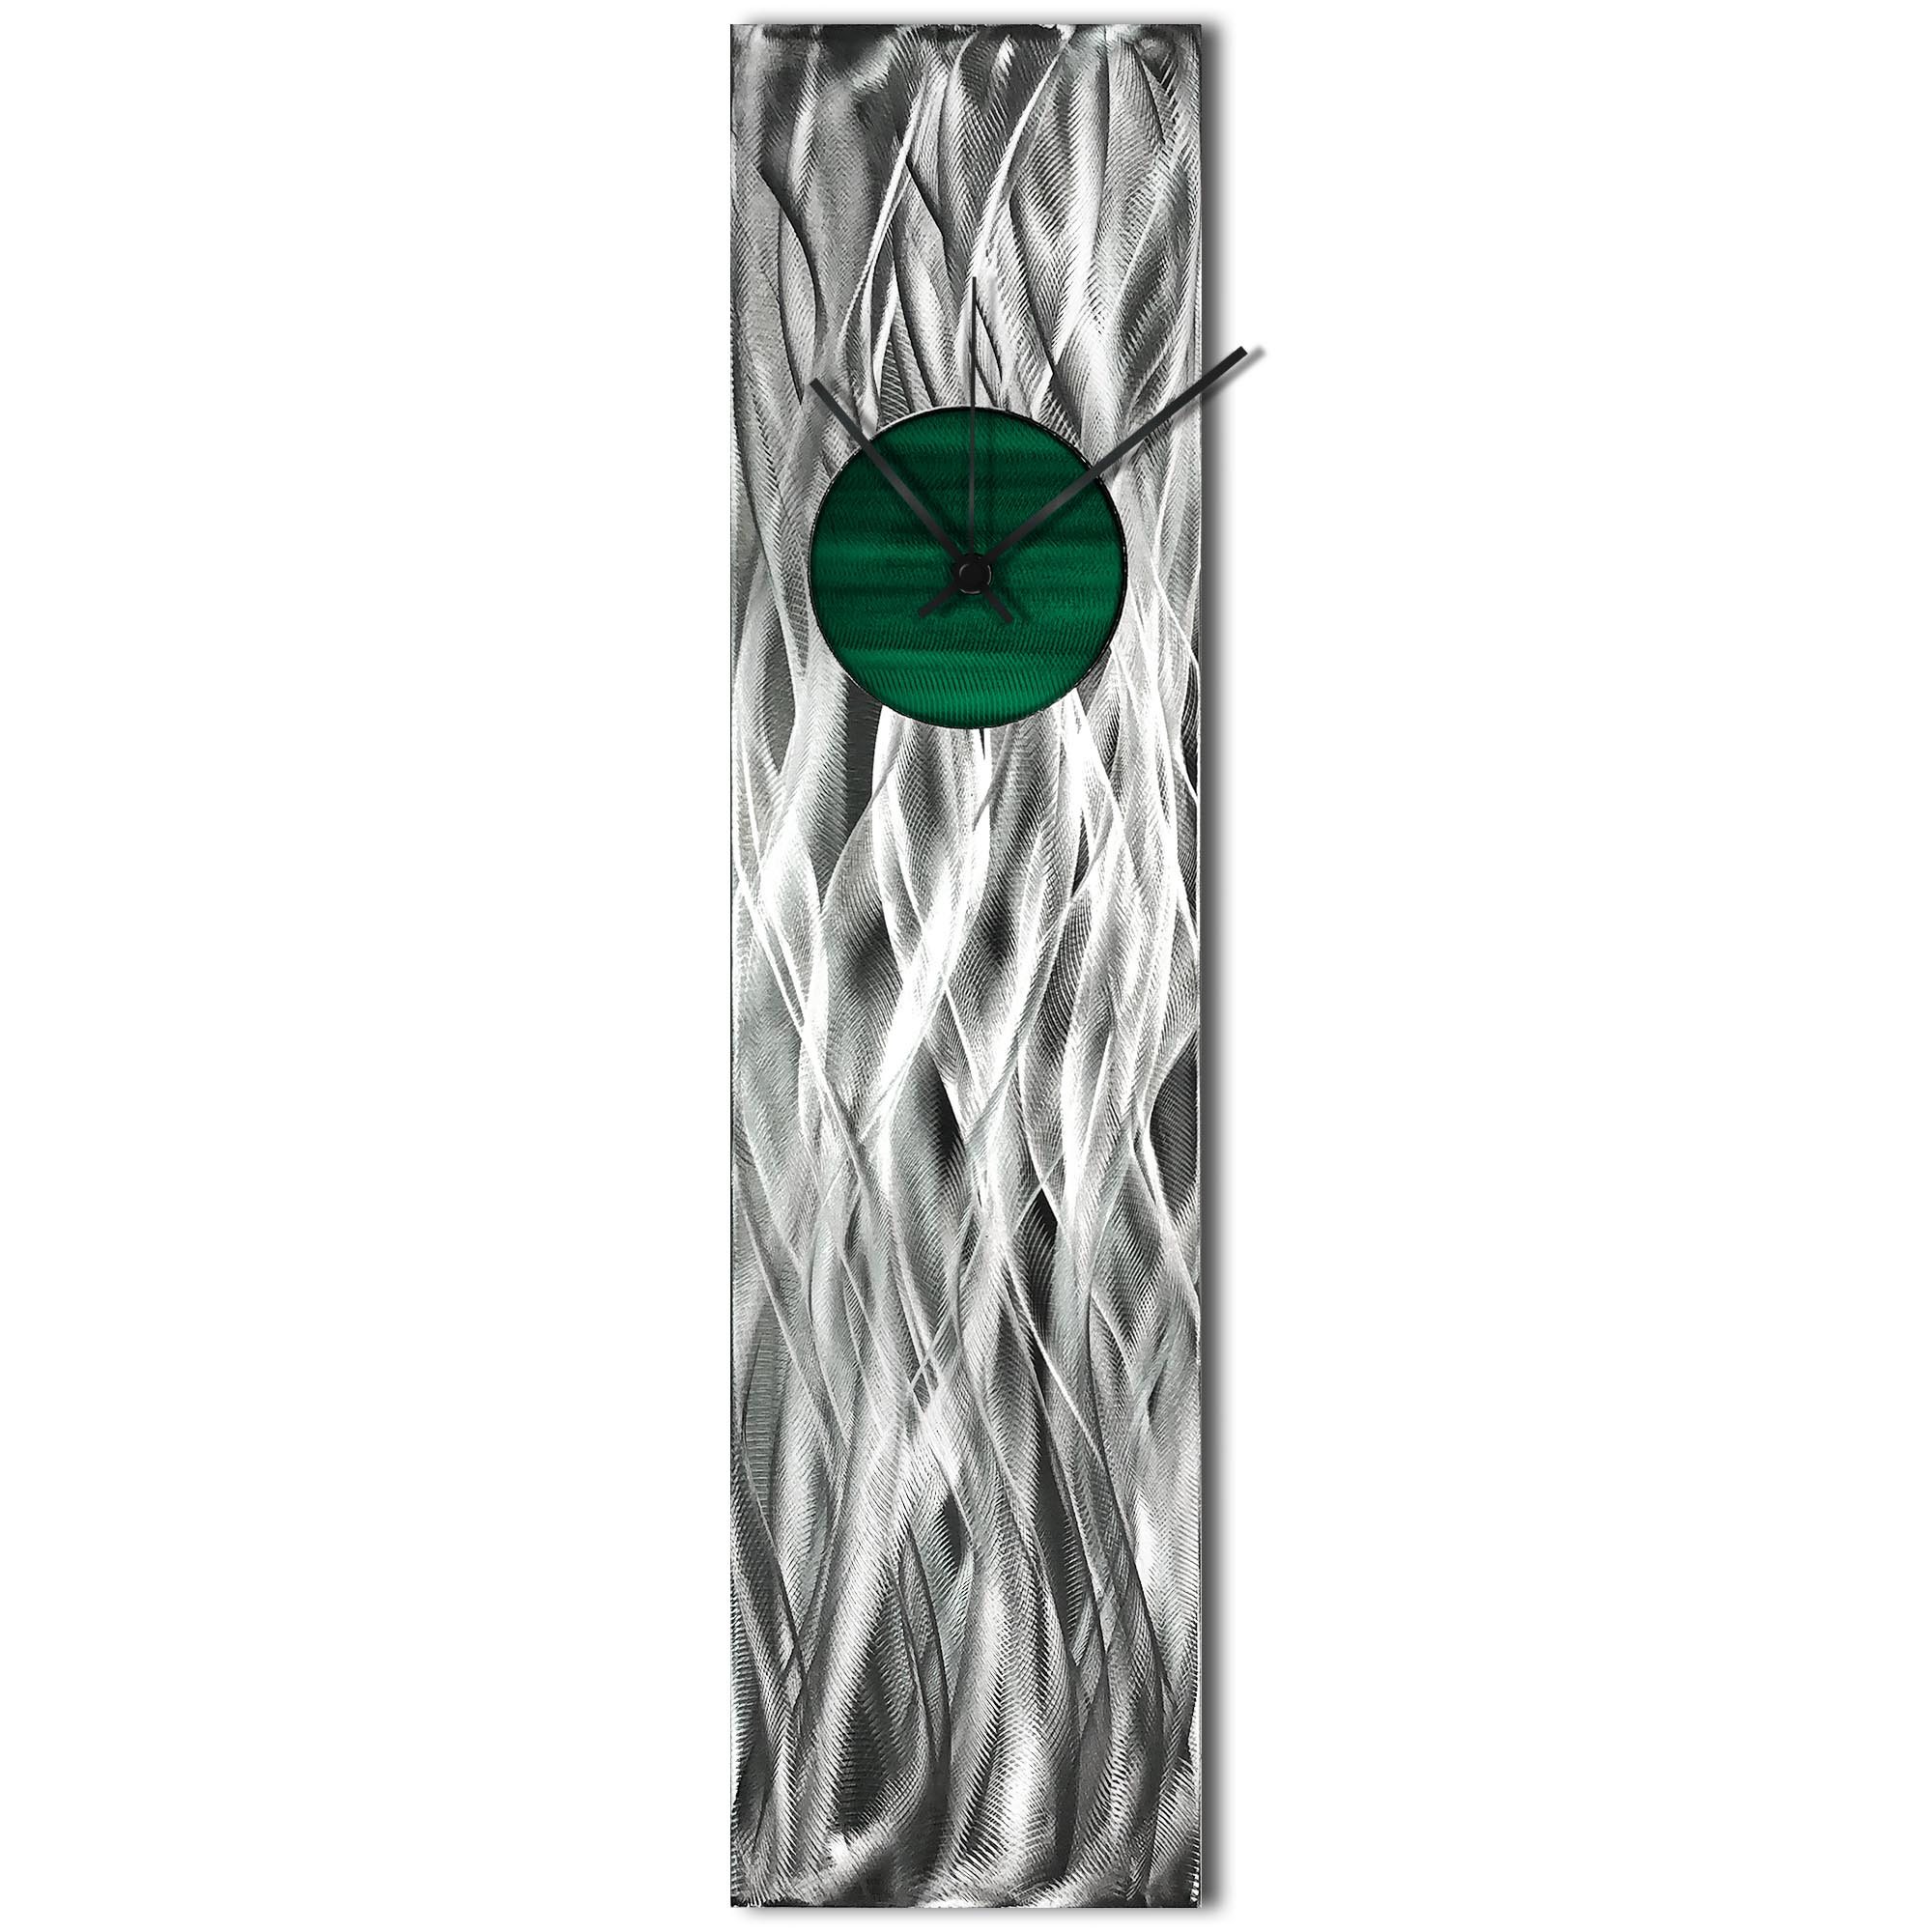 Helena Martin 'Waves Relief Clock Green' 6in x 24in Modern Wall Clock on Ground and Painted Metal